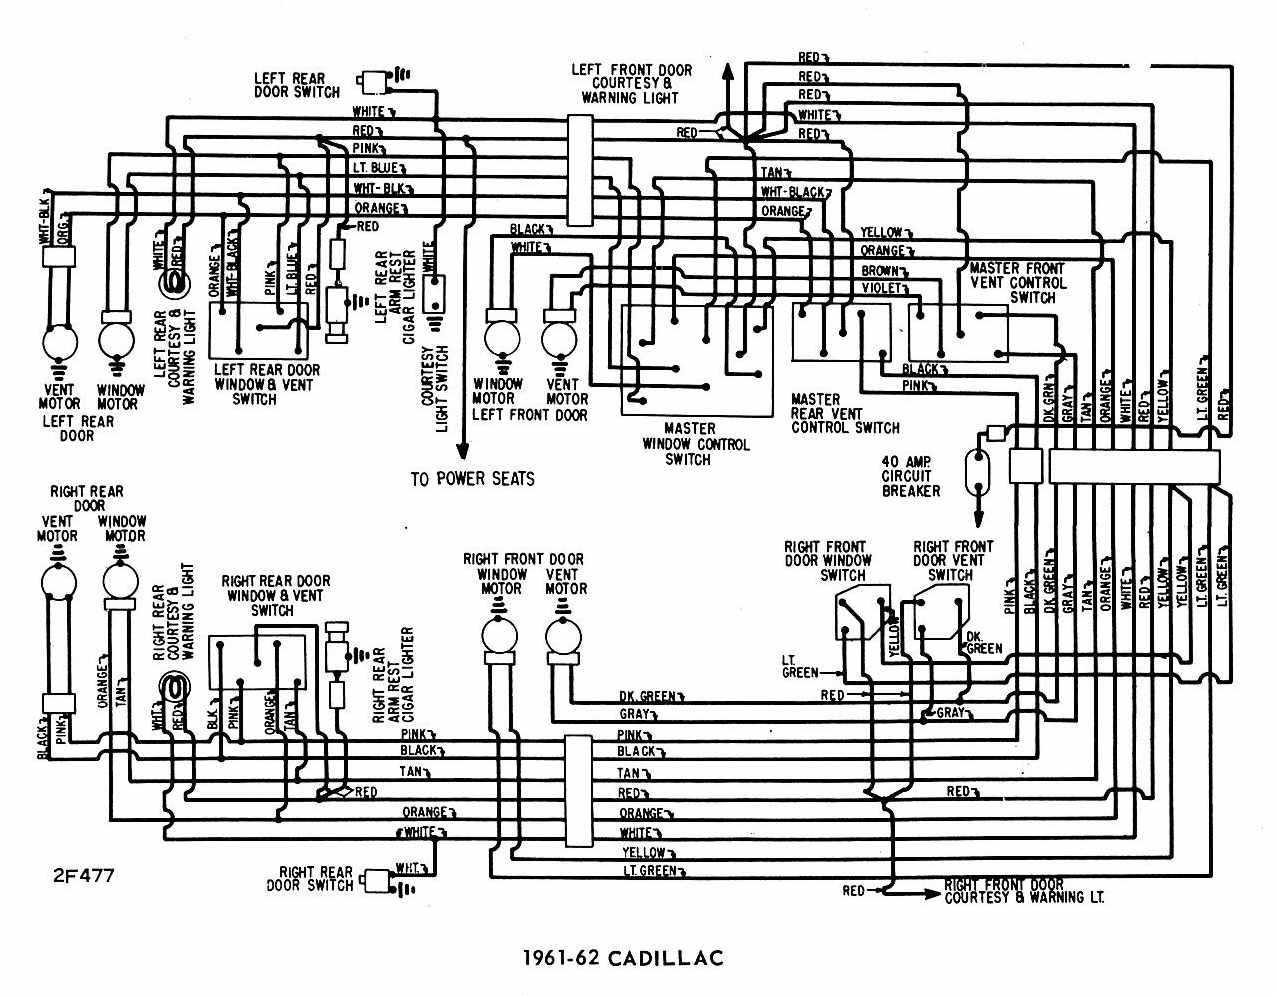 Cadillac Deville Fuse Panel Diagram Wiring Library 1988 Box Sts In The Back Seat 1997